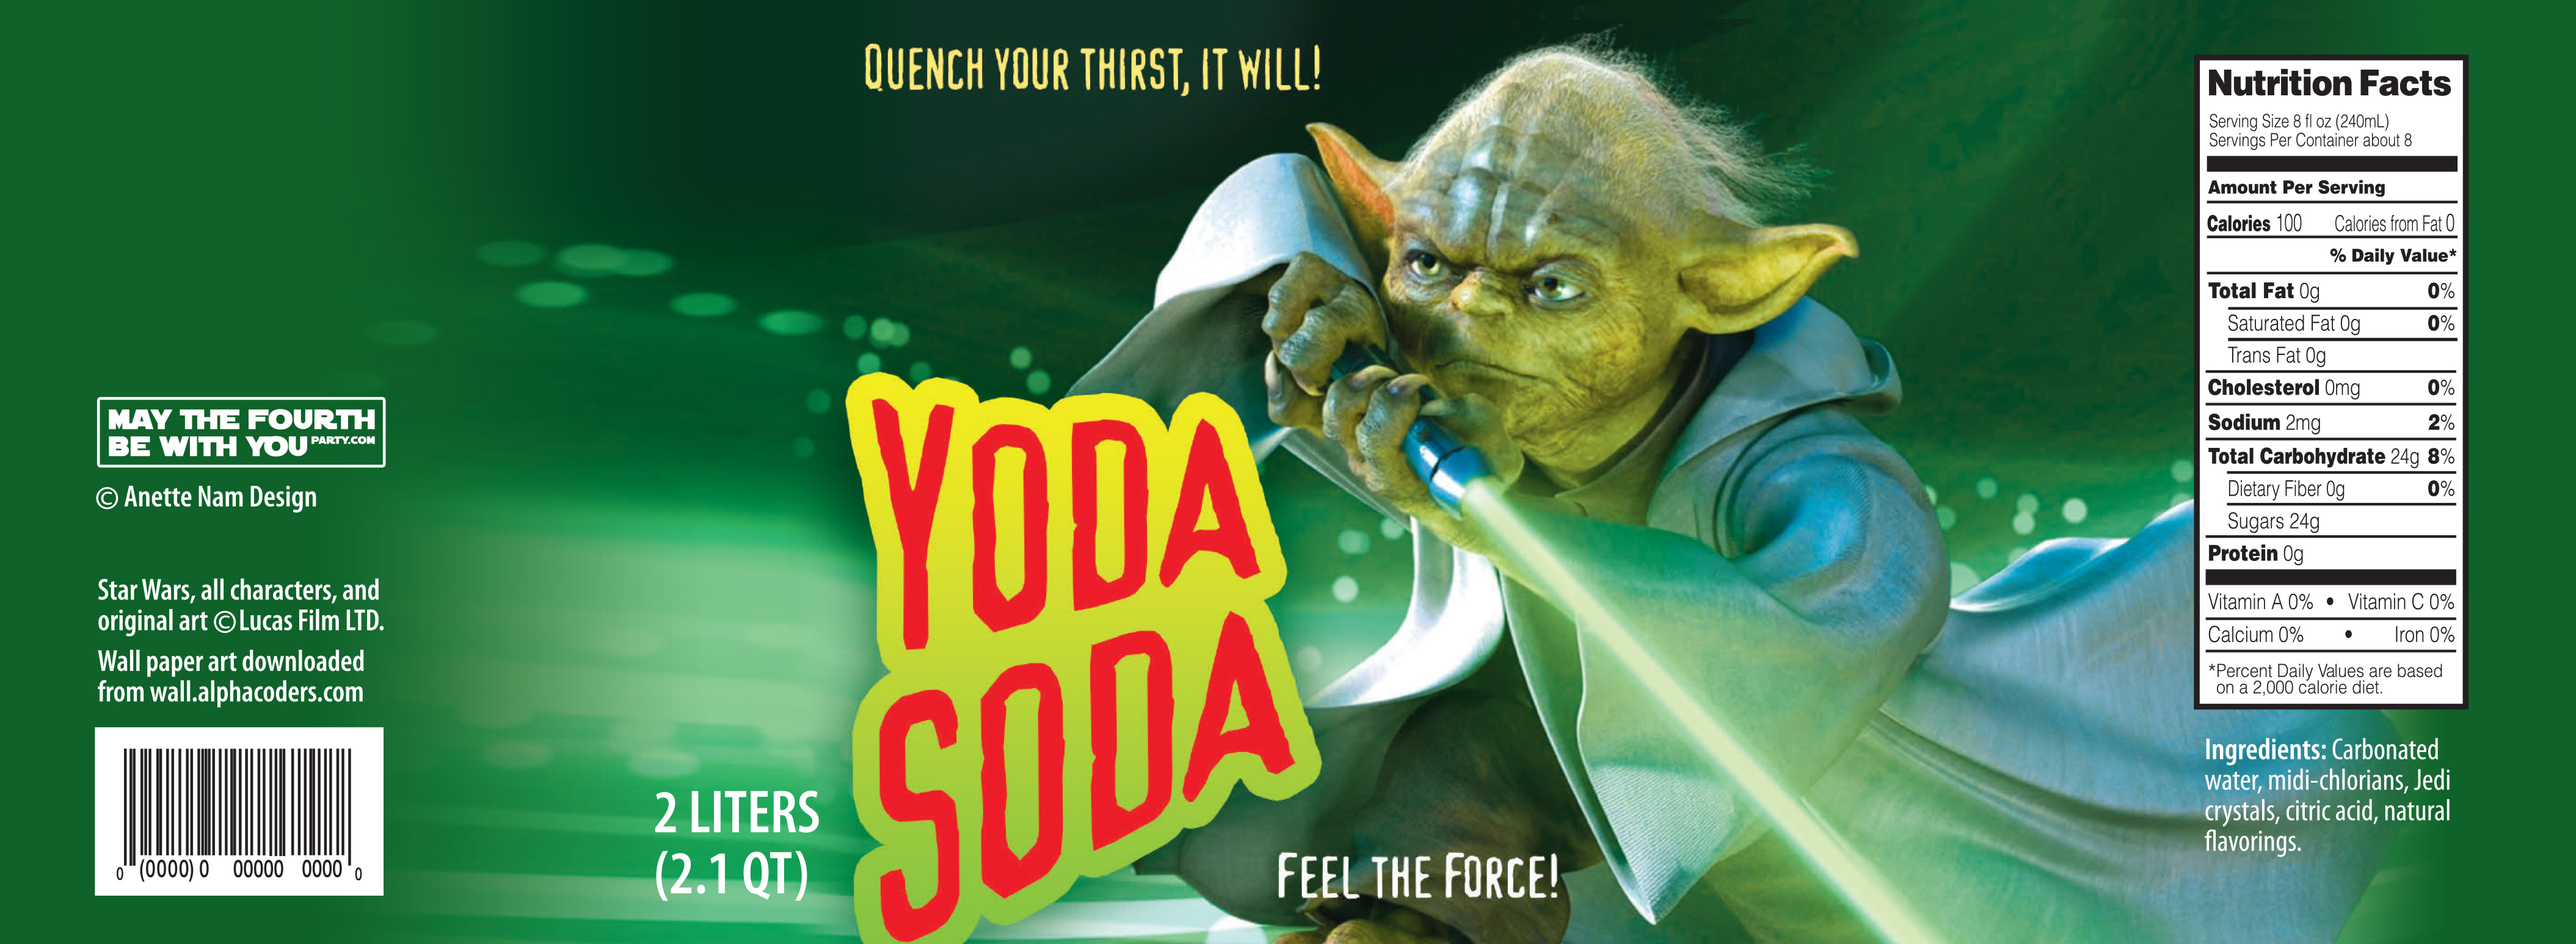 [Image: may-the-fourth-party-star-wars-soda-labels-yoda.jpg]